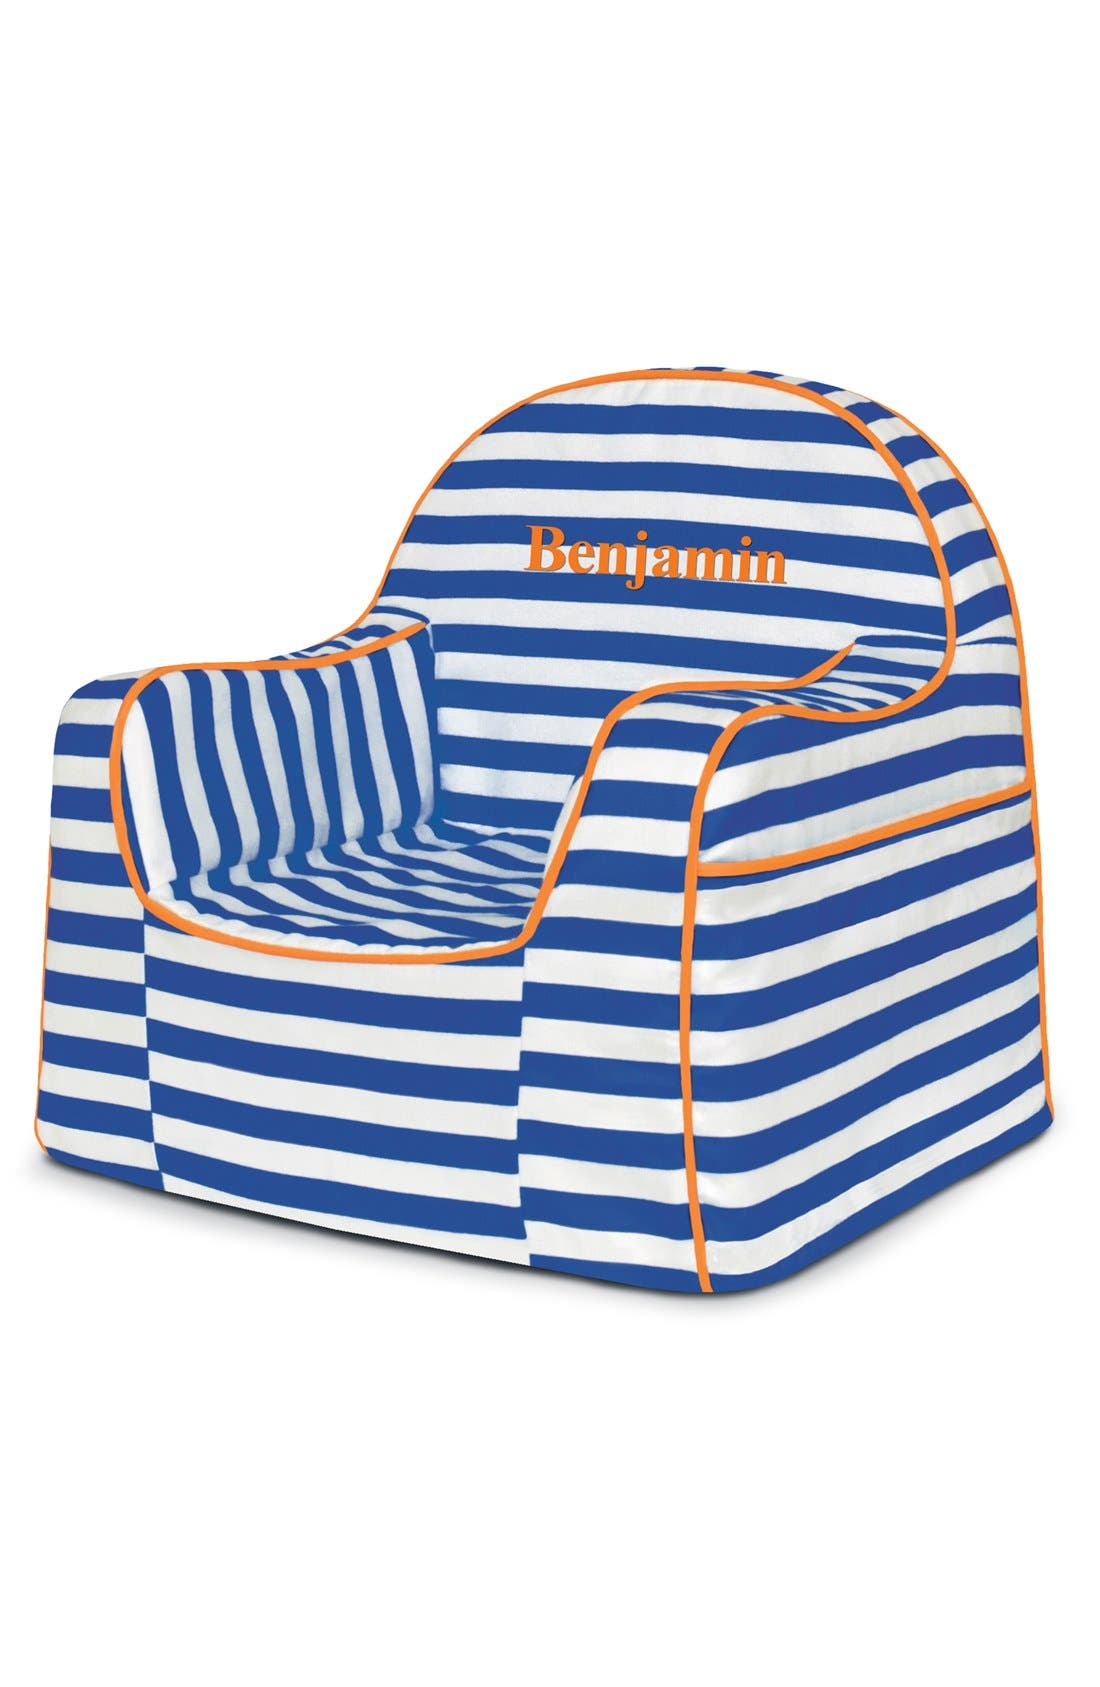 'Personalized Little Reader' Chair,                             Main thumbnail 1, color,                             405